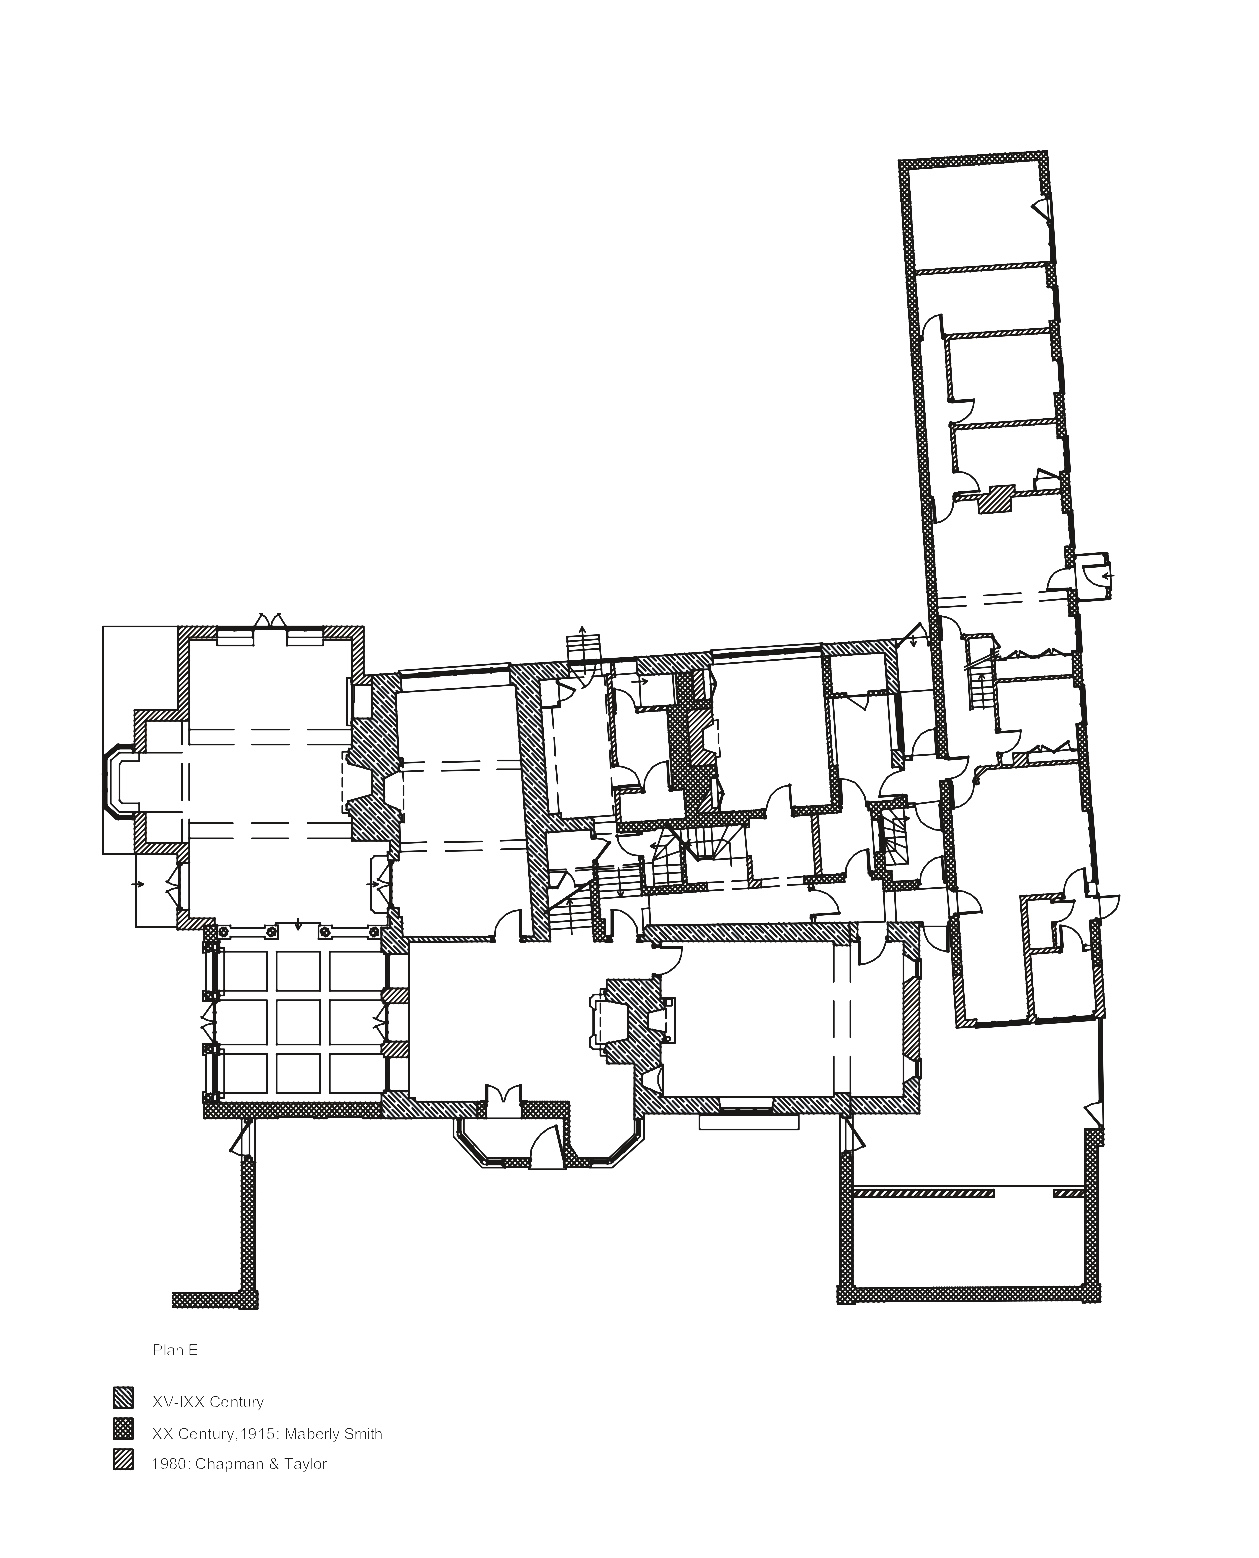 checkendon court plan.jpg